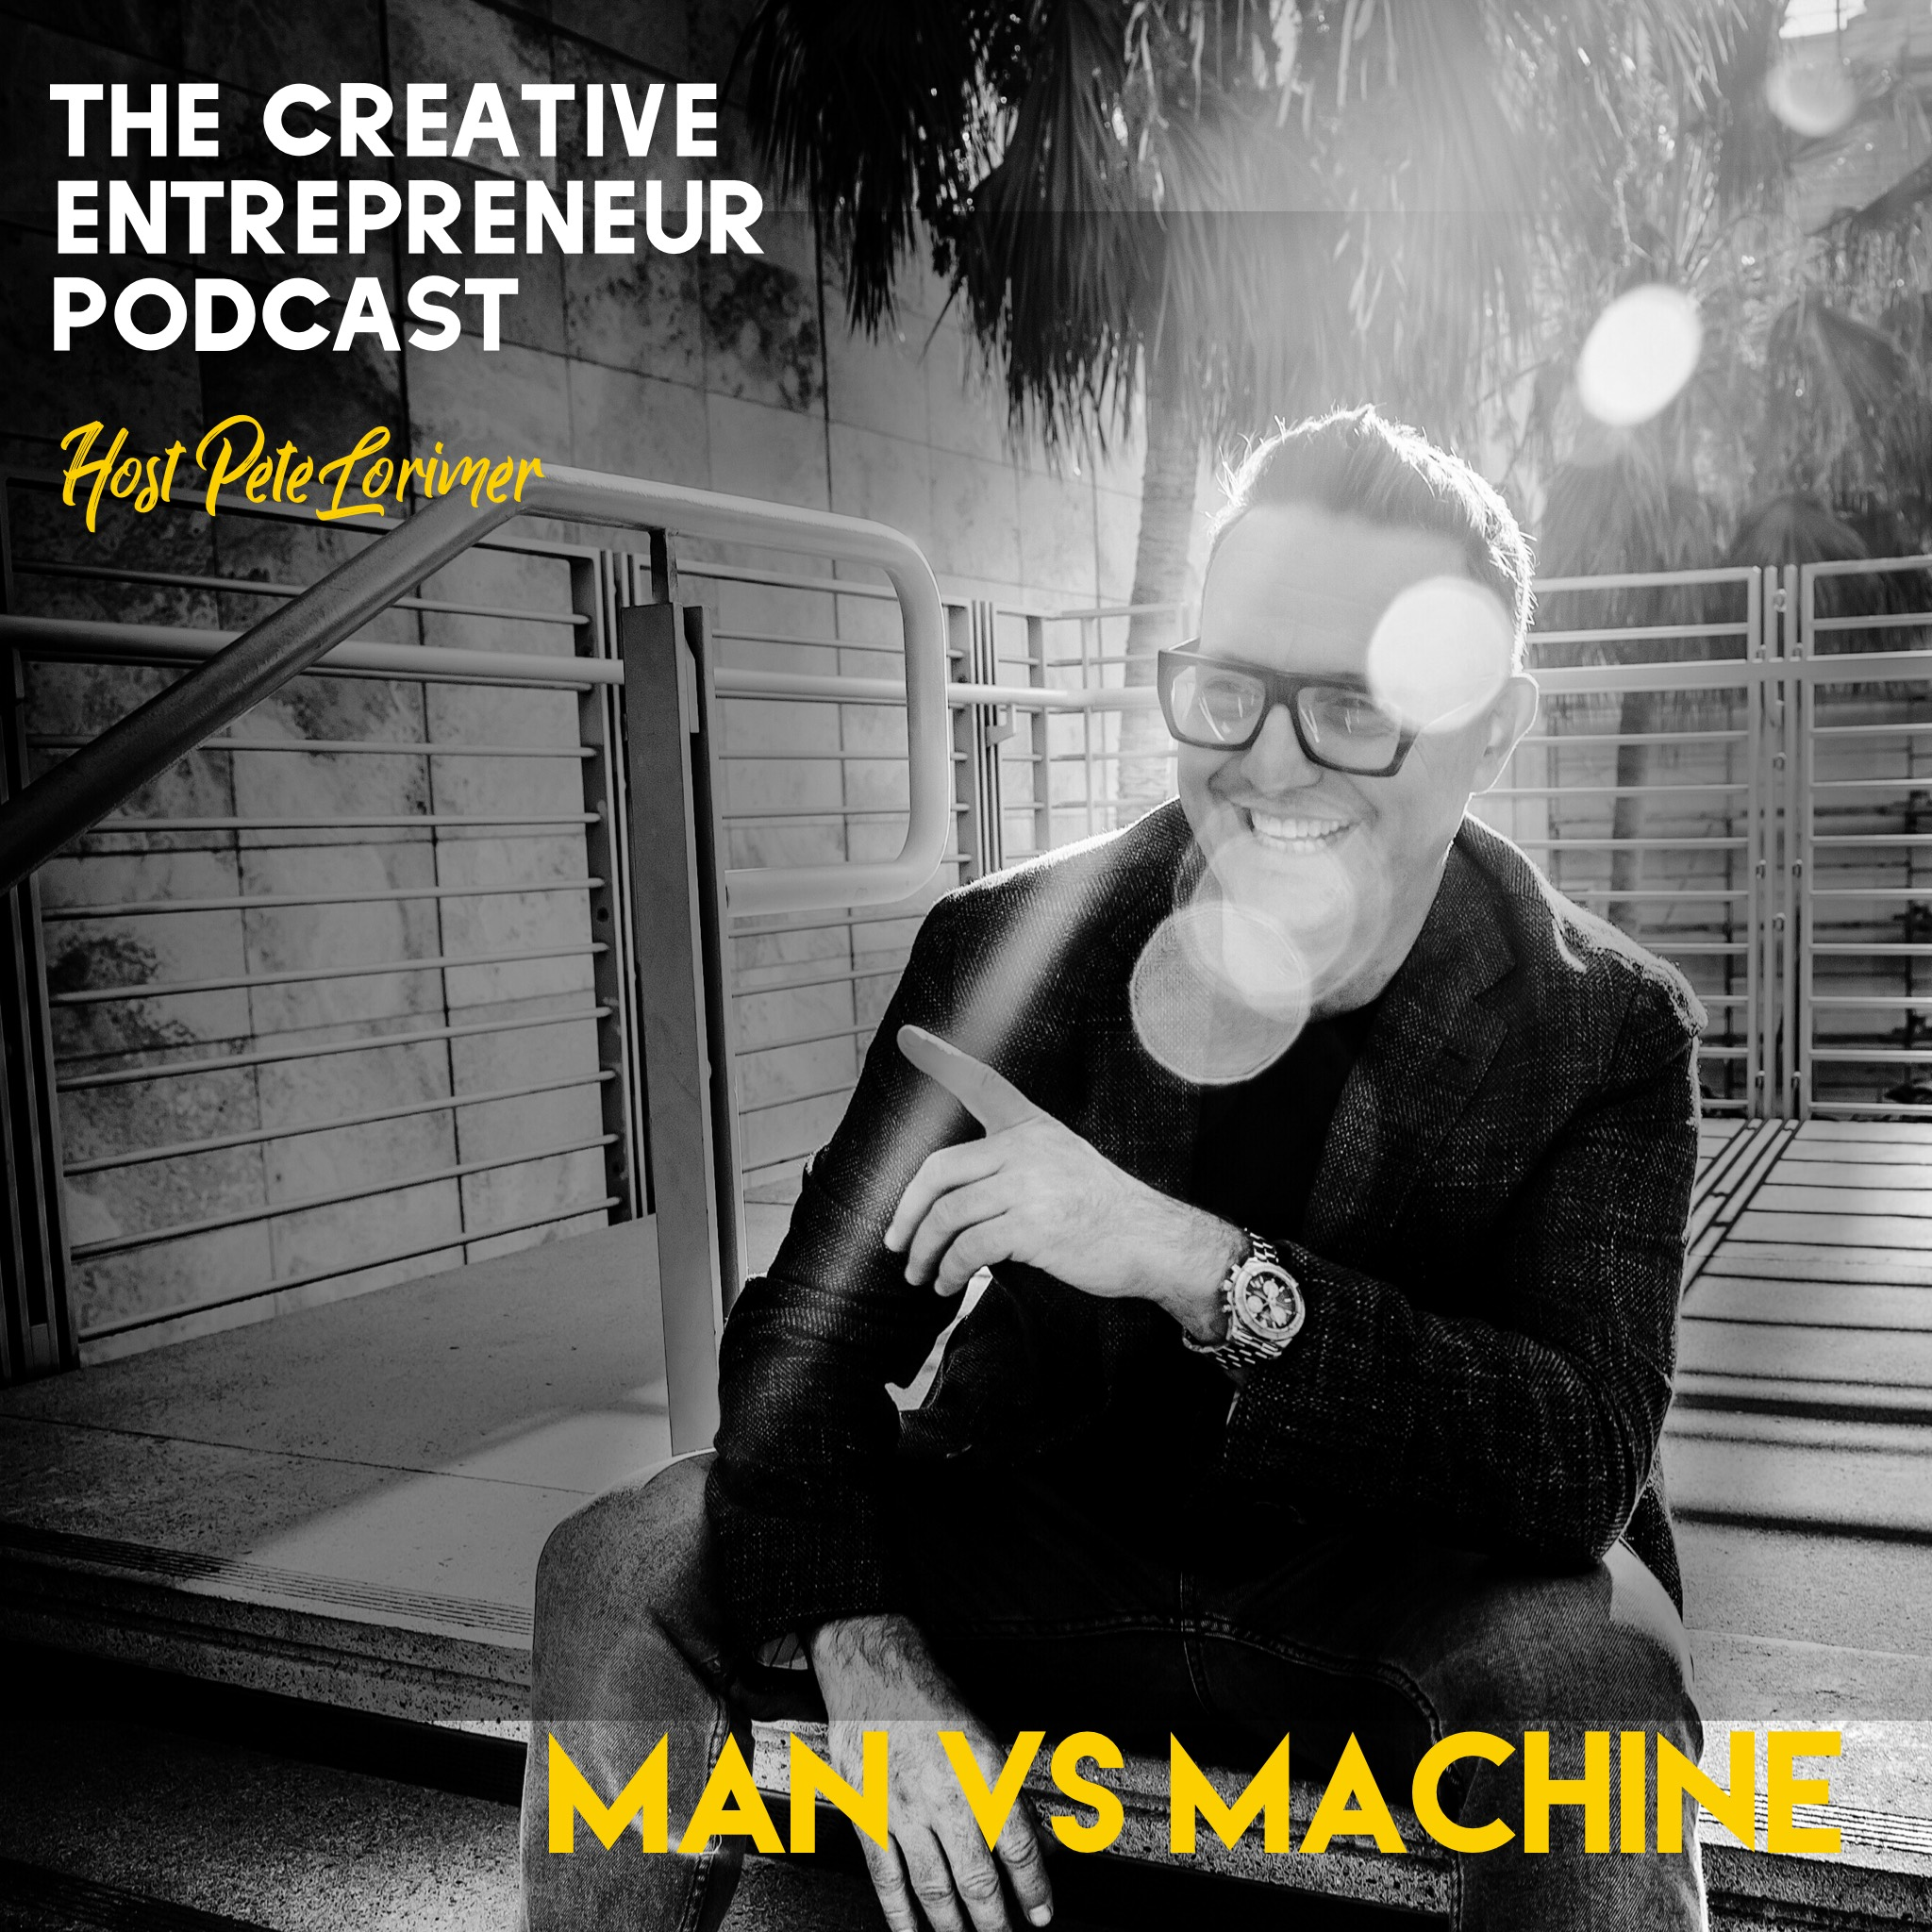 Man vs Machine / Pete Lorimer - The Creative Entrepreneur Podcast